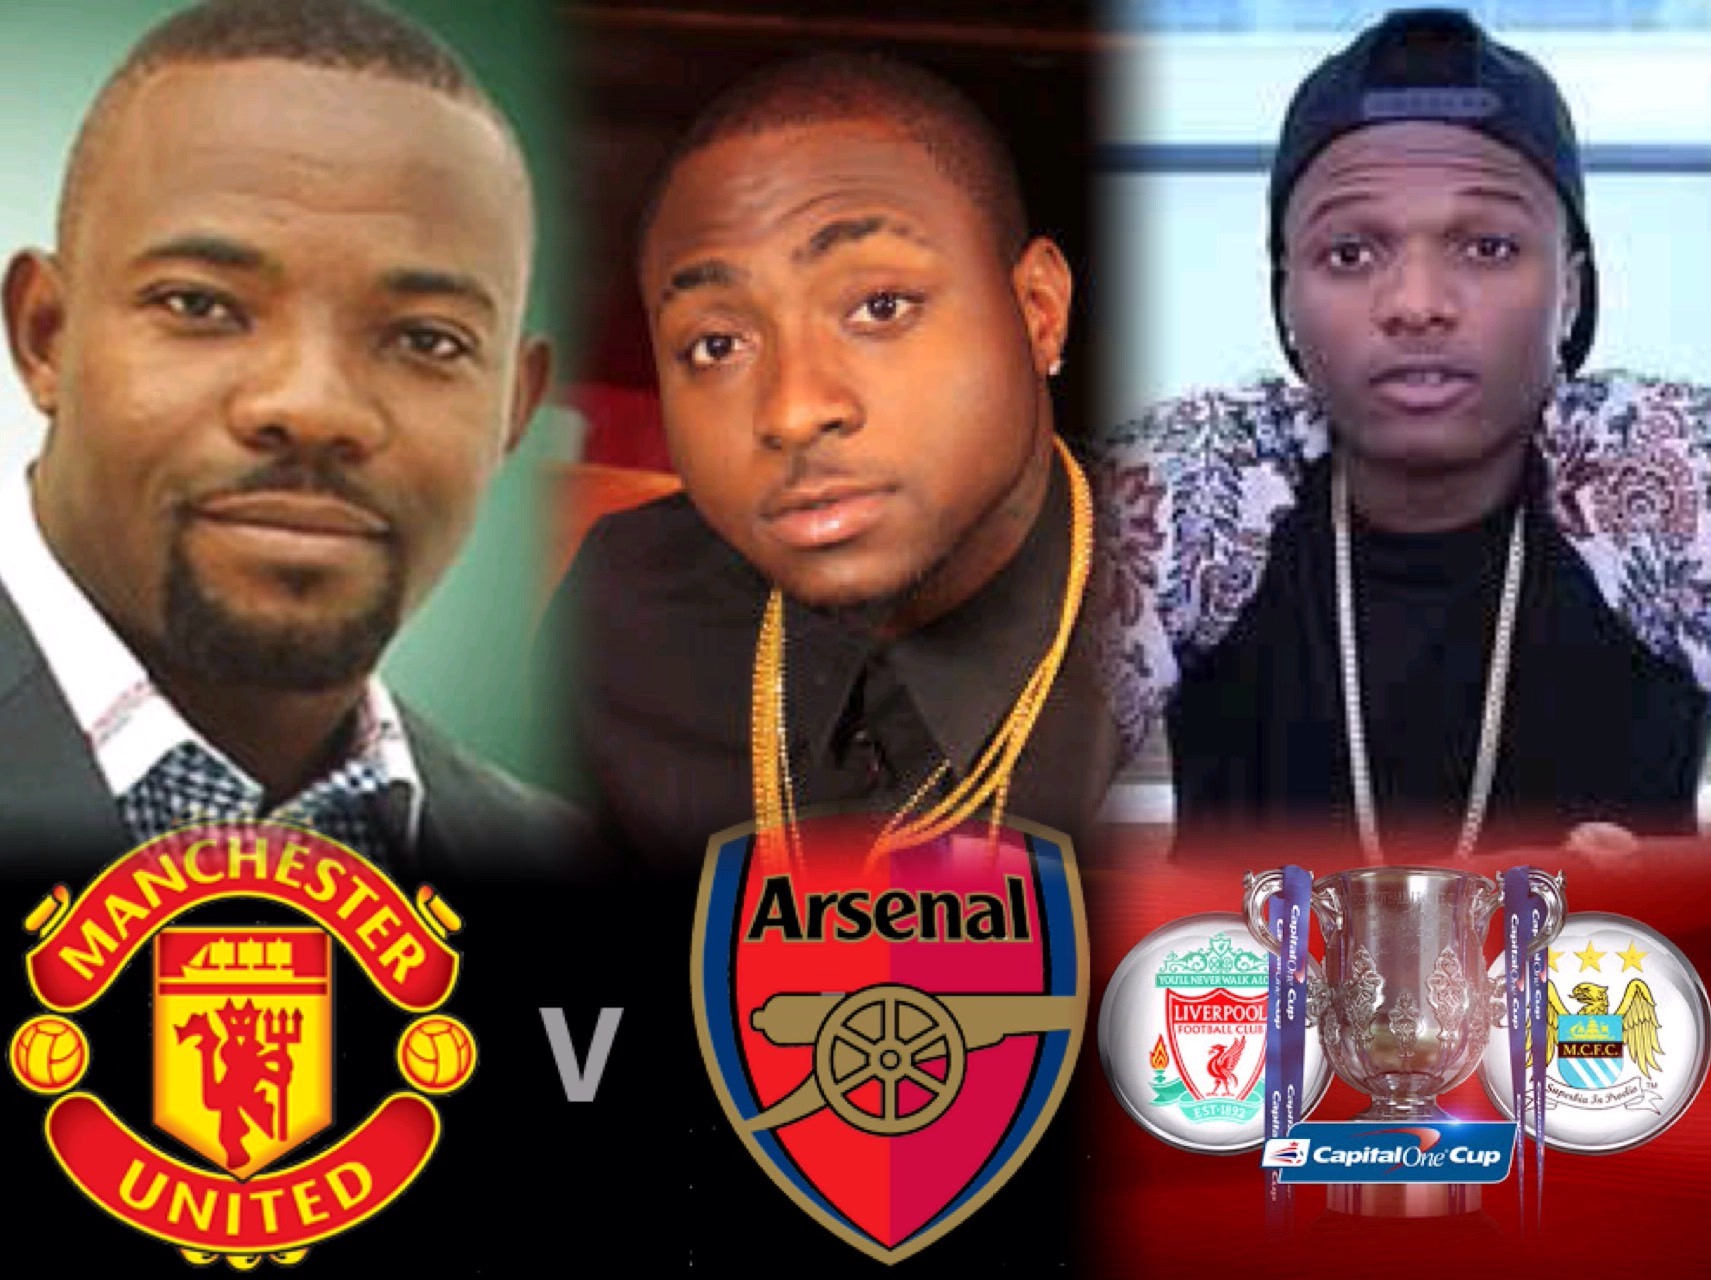 Okey Bakassi Backs Arsenal Against United, Davido In Dilemma; Wizkid Roots For Liverpool